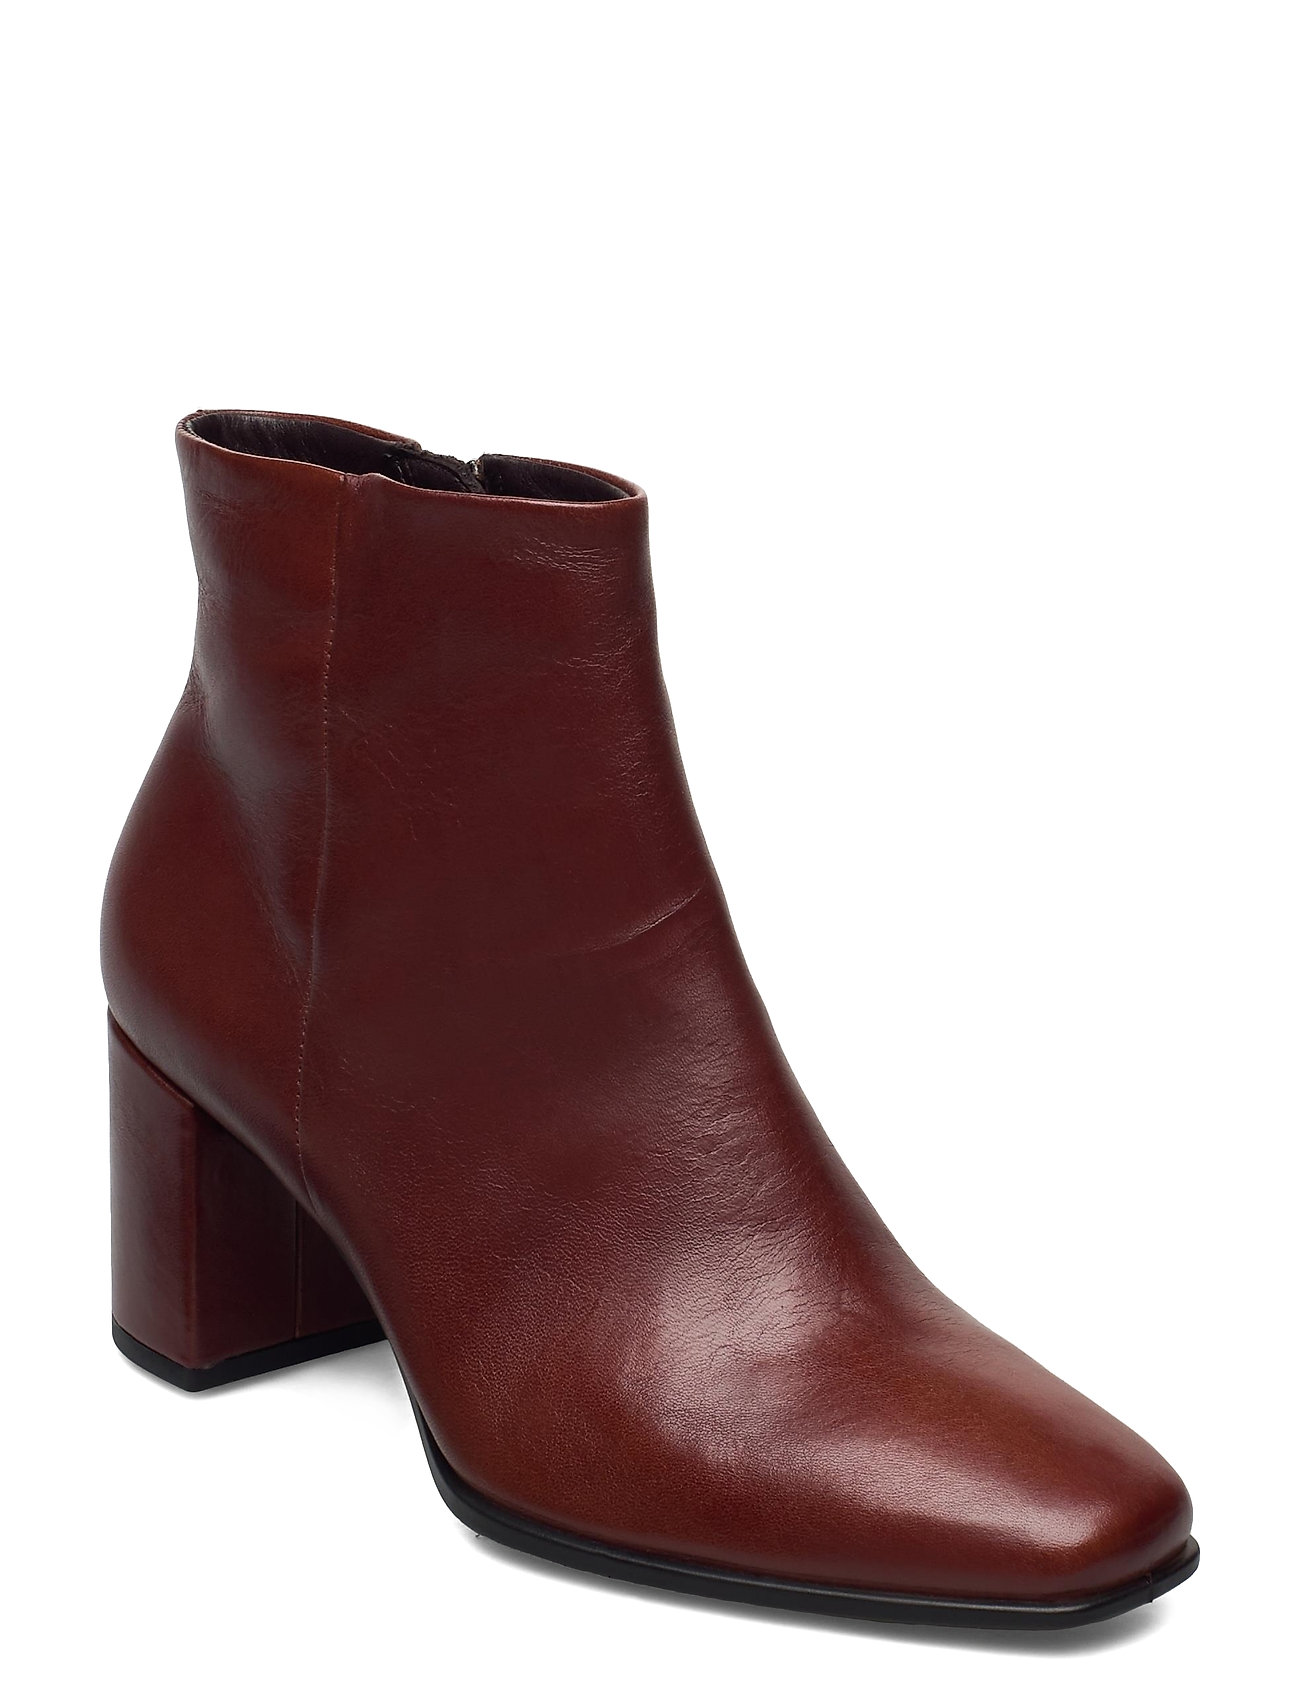 Image of Shape 60 Squared Shoes Boots Ankle Boots Ankle Boot - Heel Brun ECCO (3454939797)